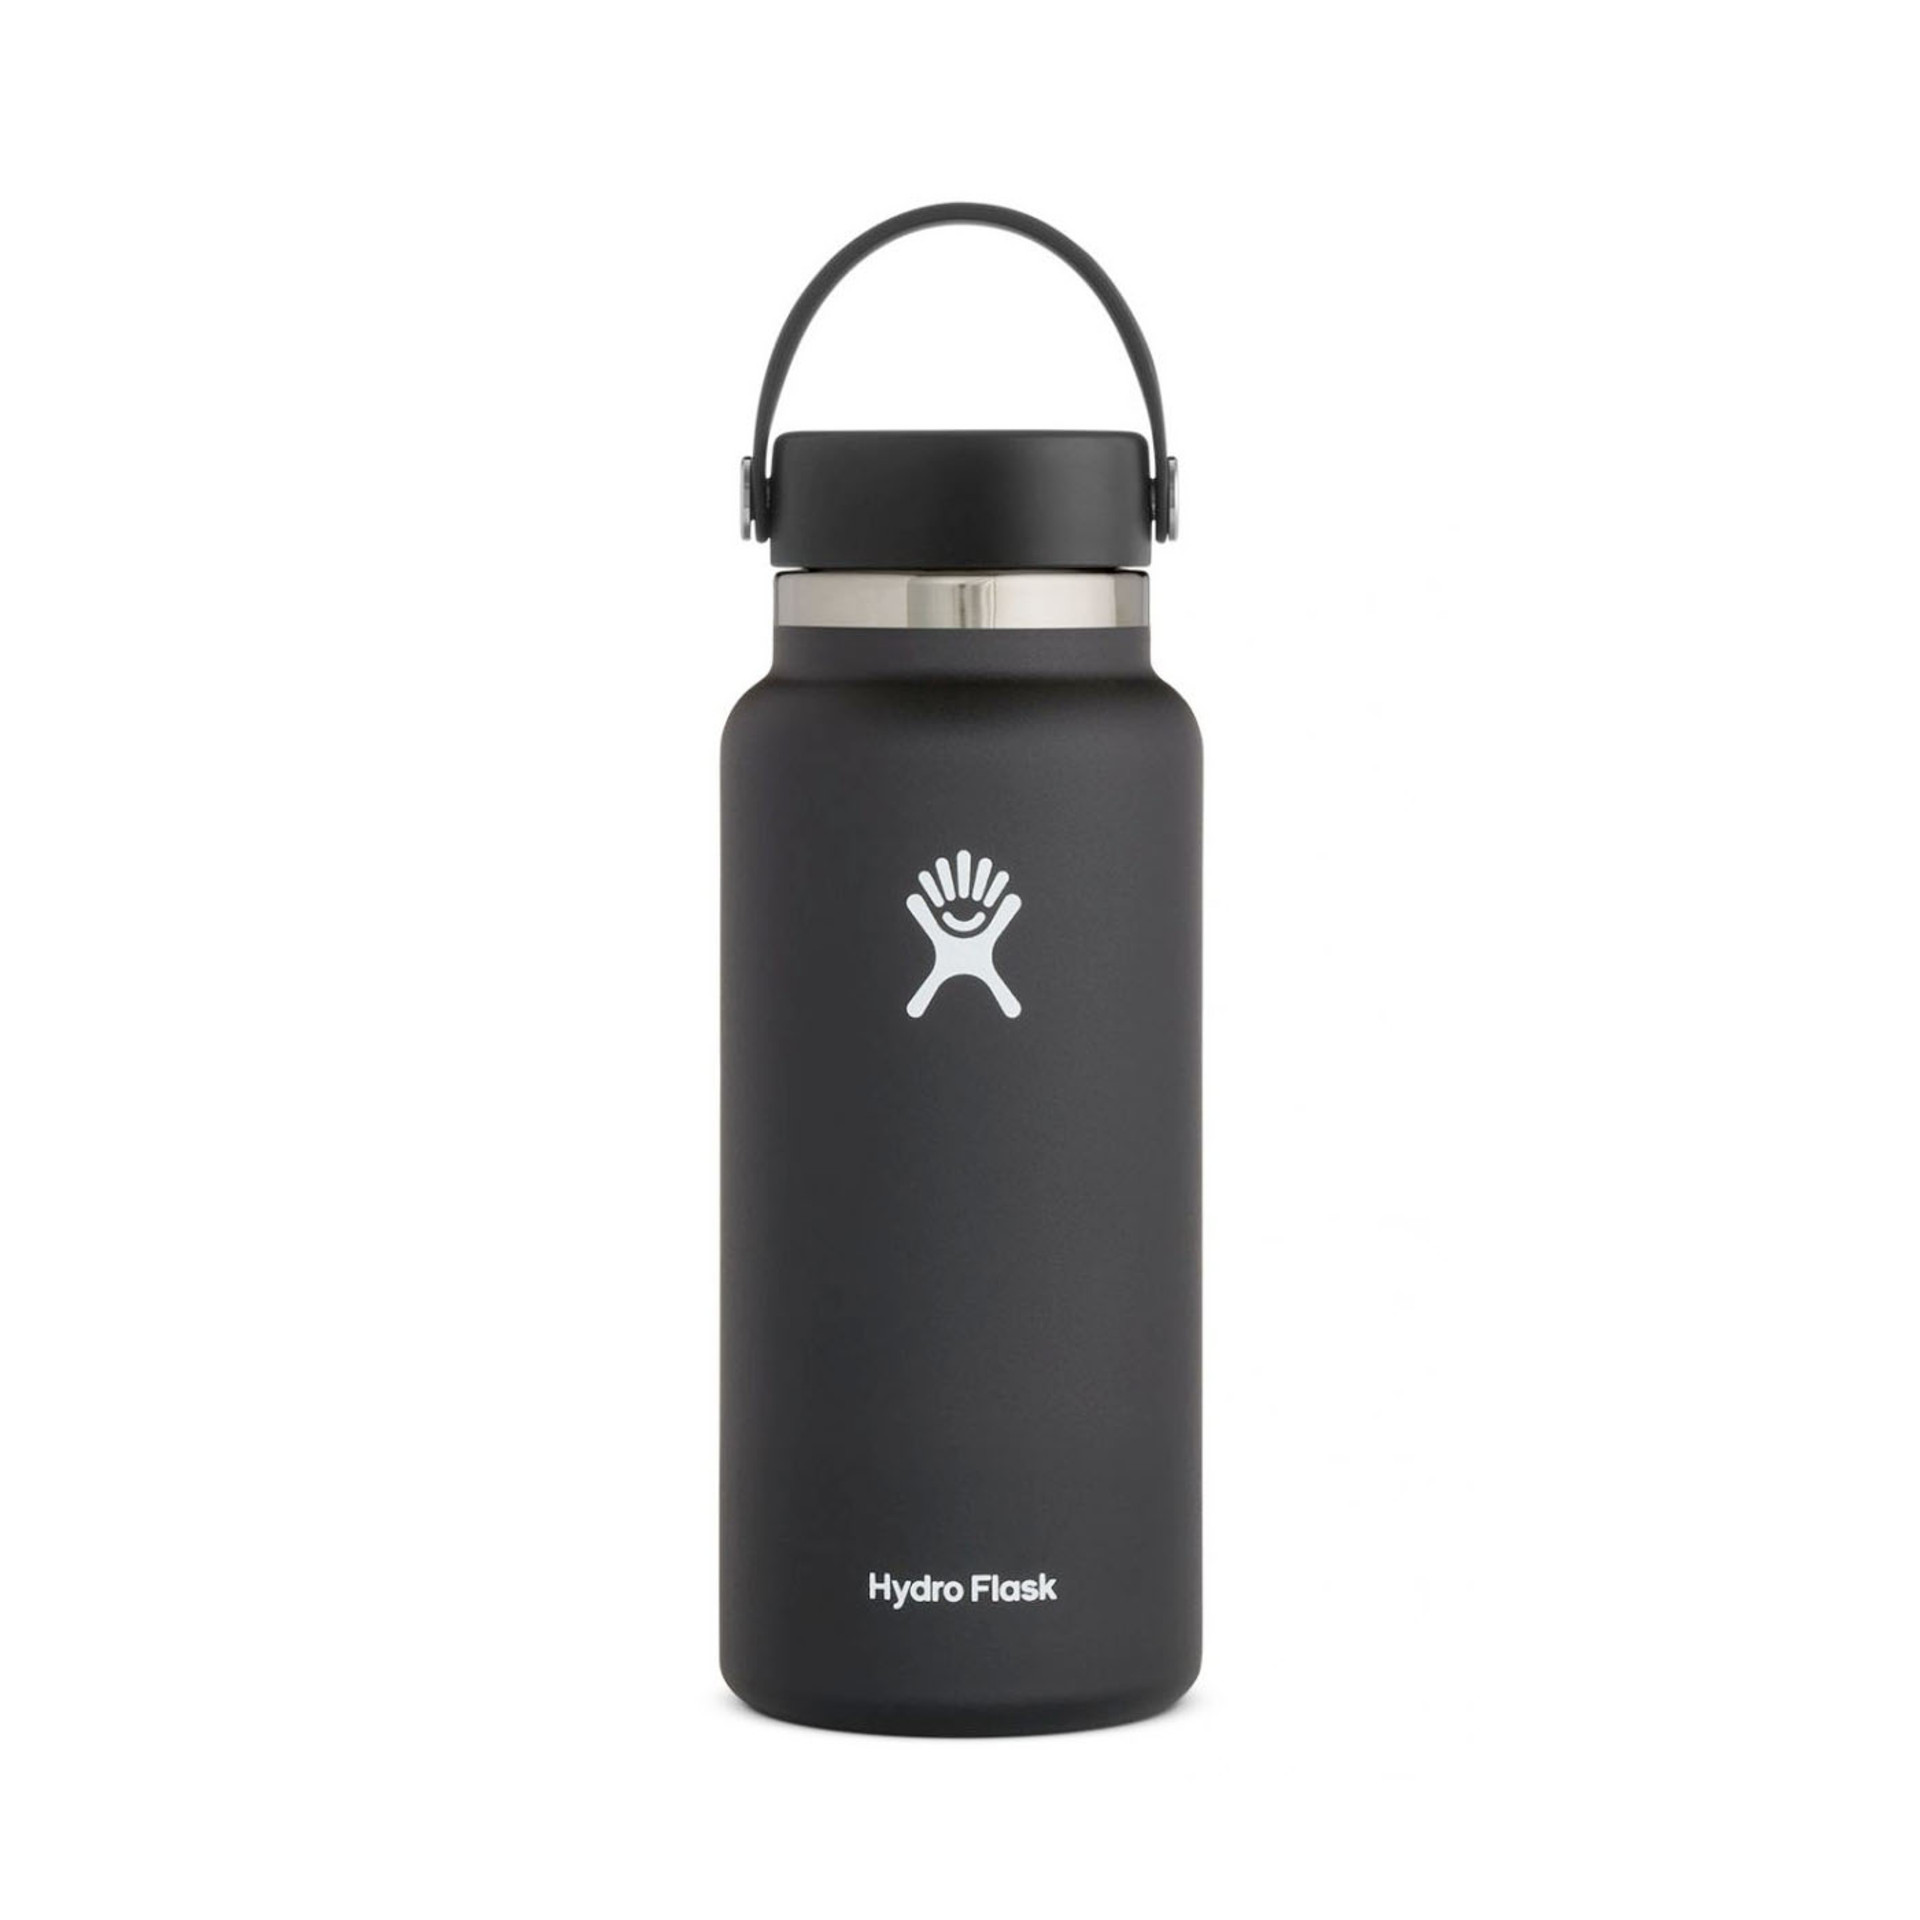 Hydro Flask Wide Mouth Water Bottle 32oz Black